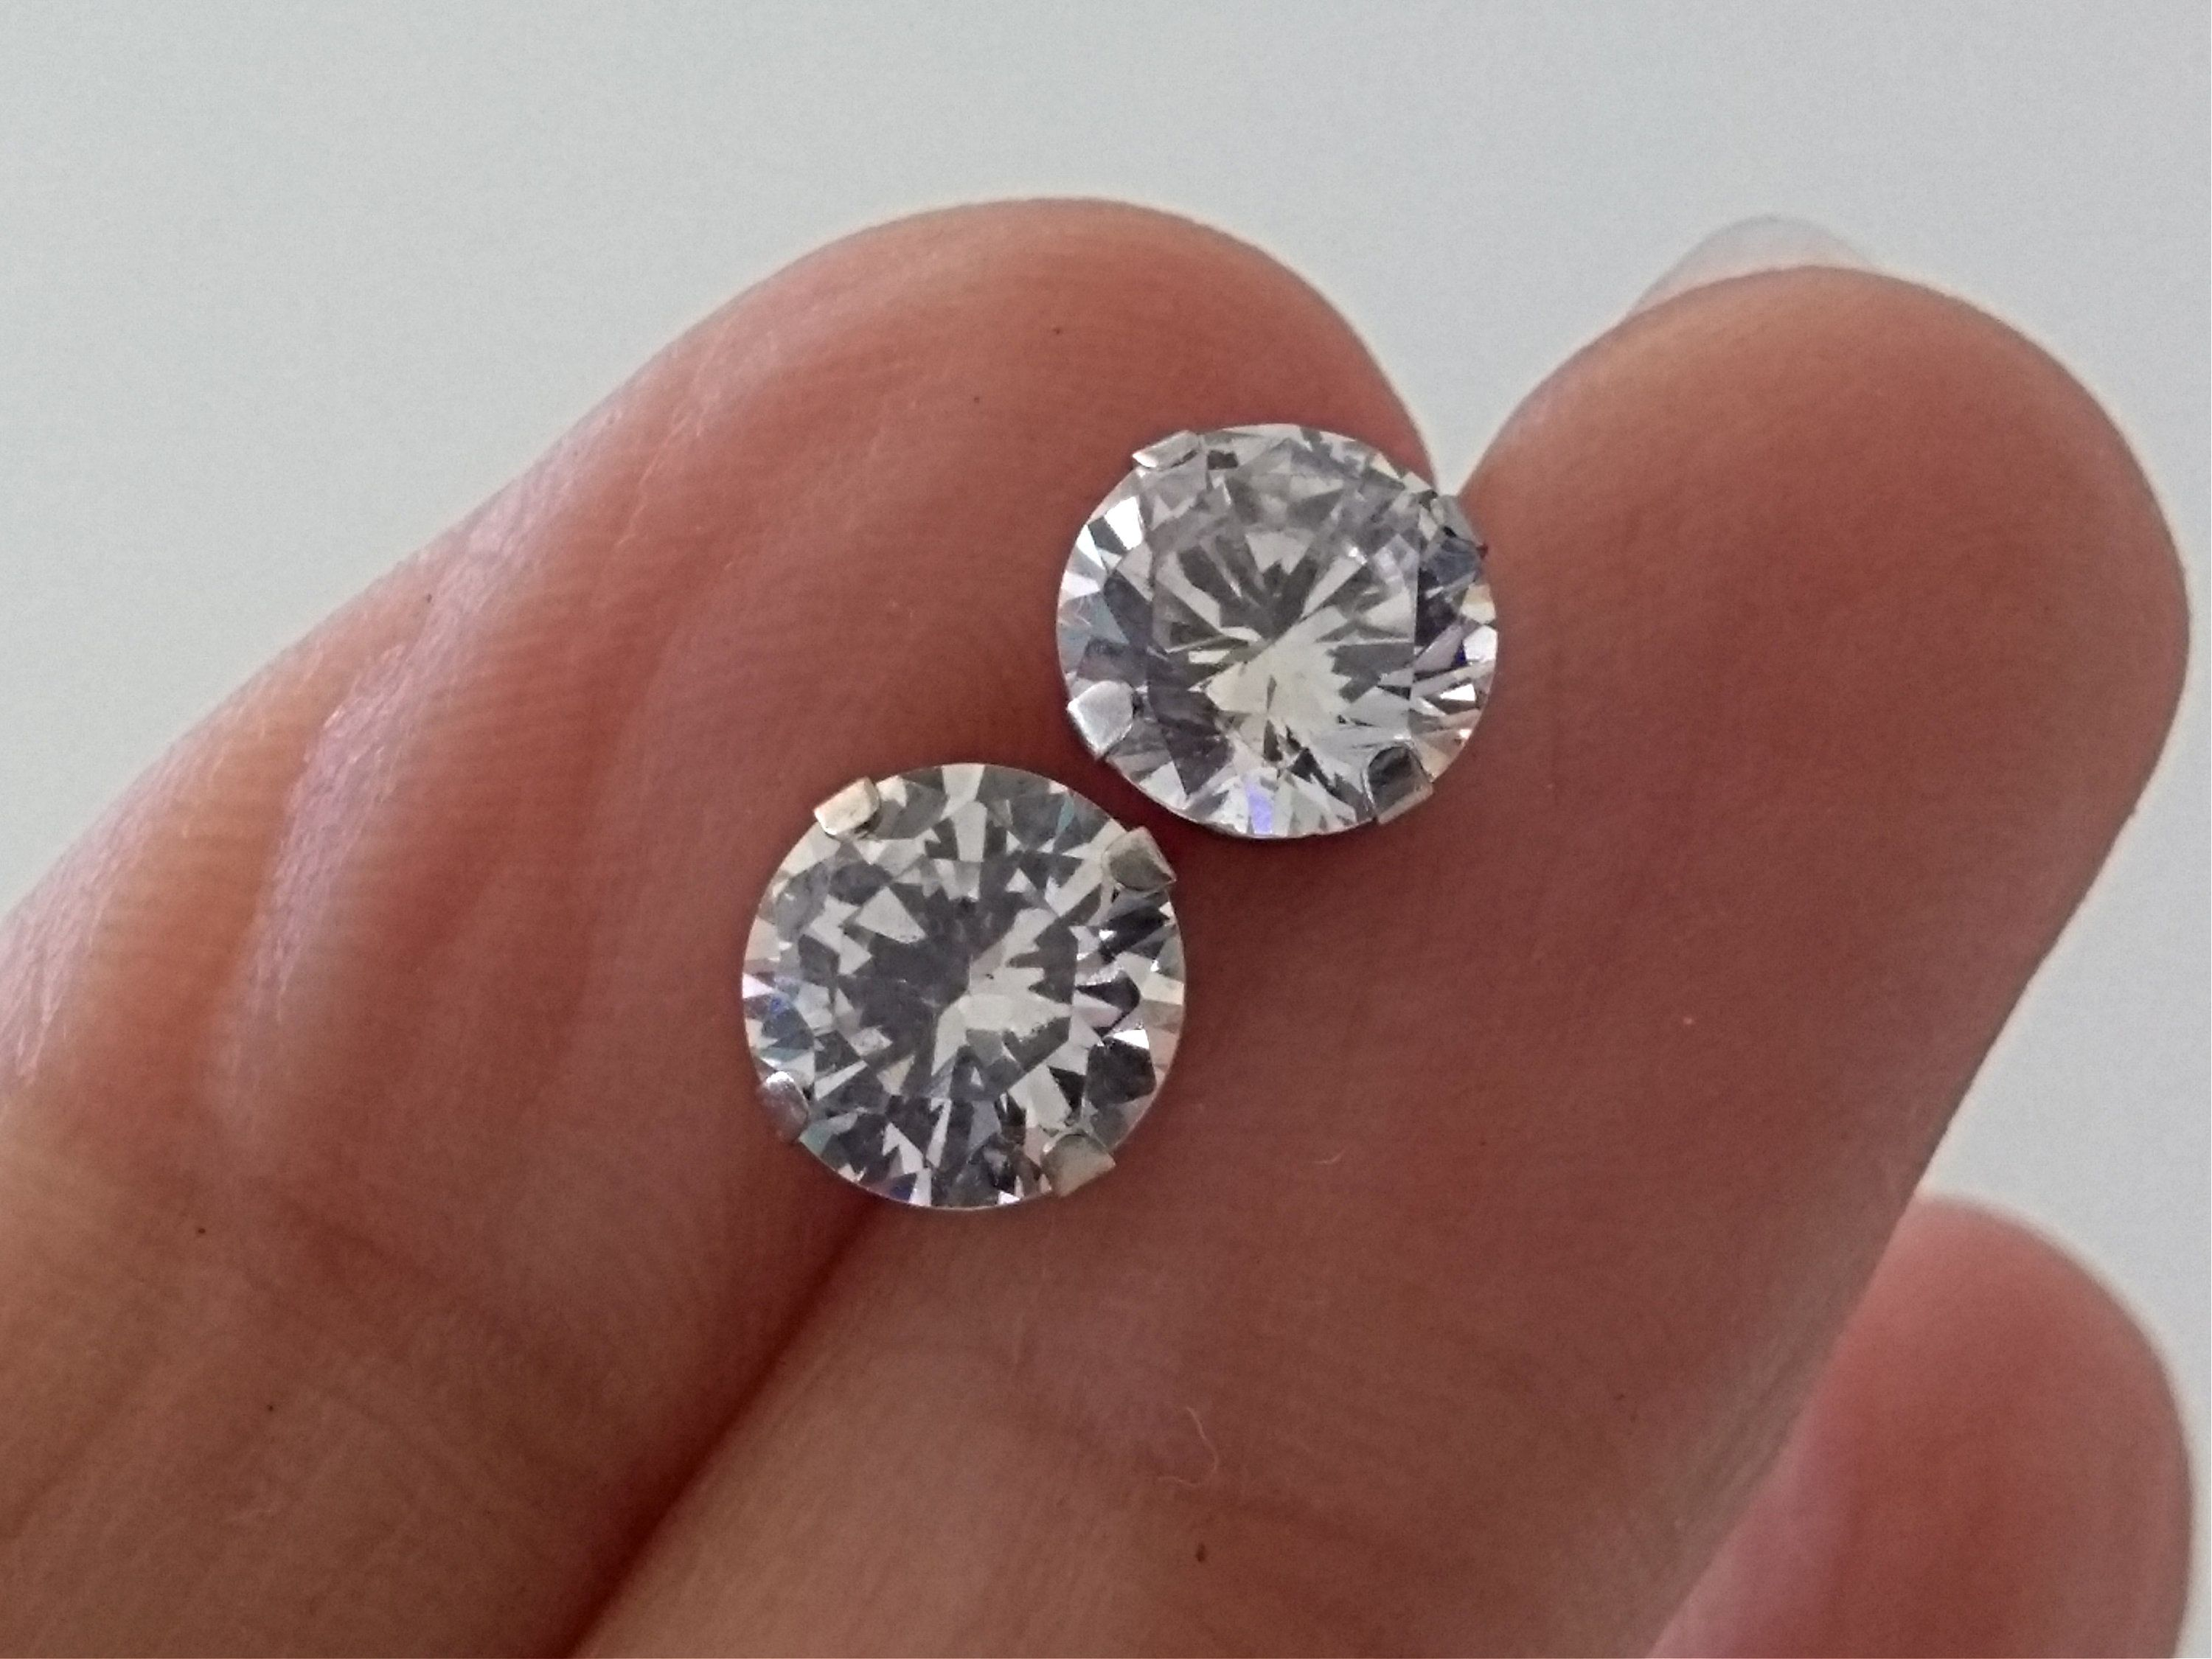 Vintage 10k White Gold Clear Cubic Zirconia 7mm Round Stud Earrings Pierced Post Earrings Free Shipping U S With Images Round Stud Earrings Stud Earrings Post Earrings